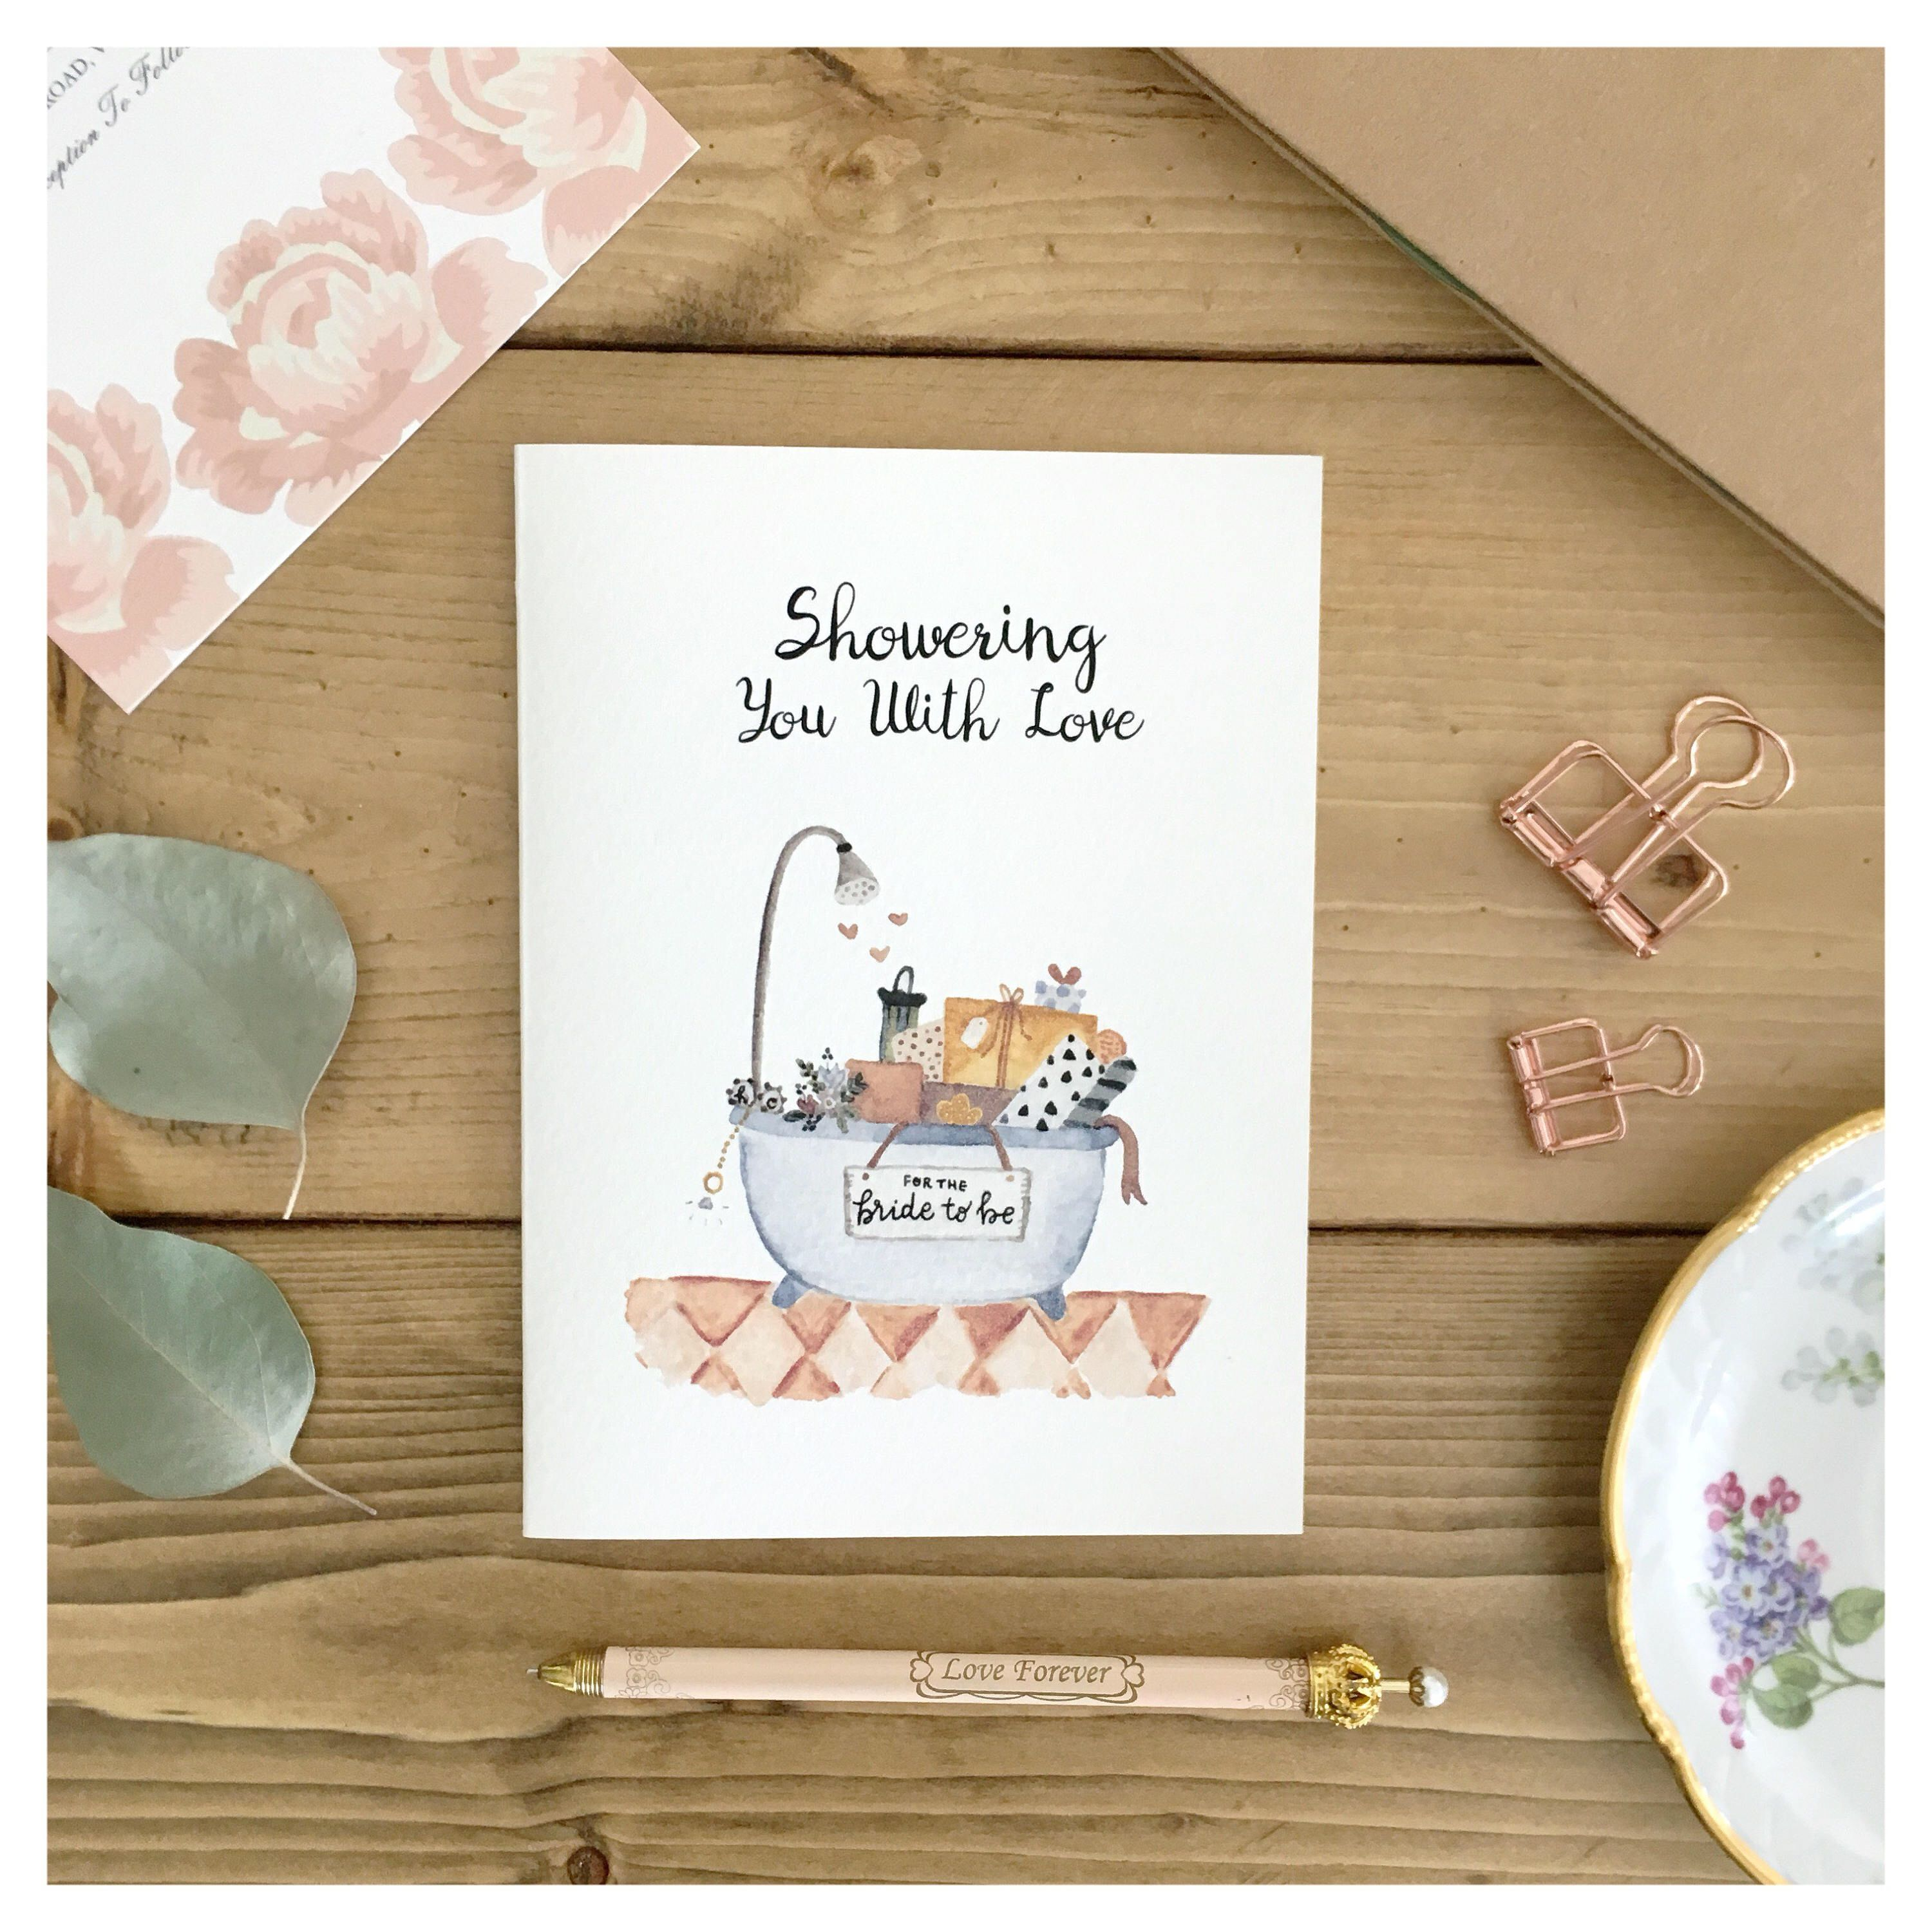 Bridal shower card bridal shower gift card for bride cute card bridal shower card bridal shower gift card for bride cute card for bride kristyandbryce Image collections